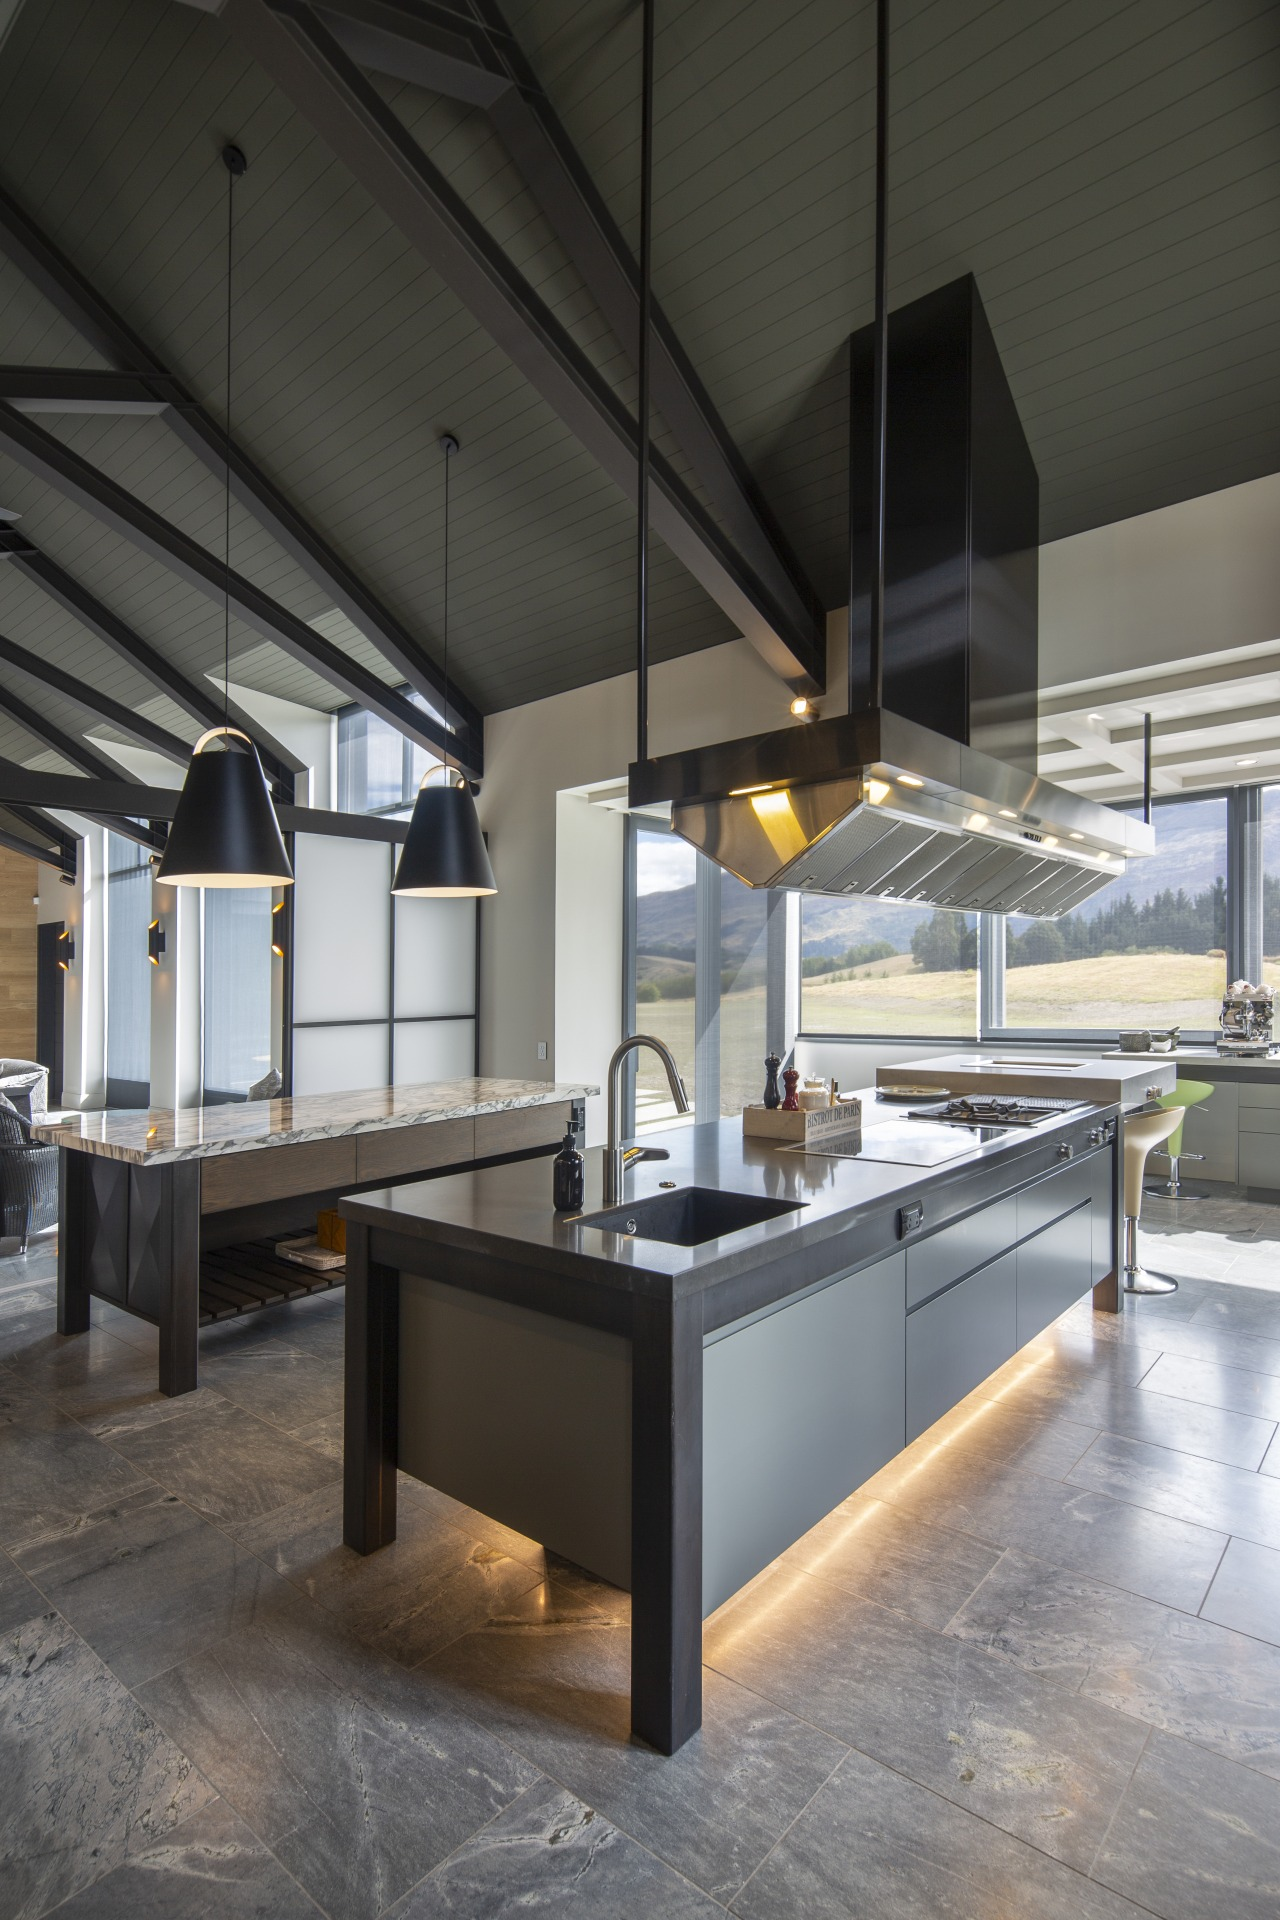 Two substantial islands take centre stage in this black, gray